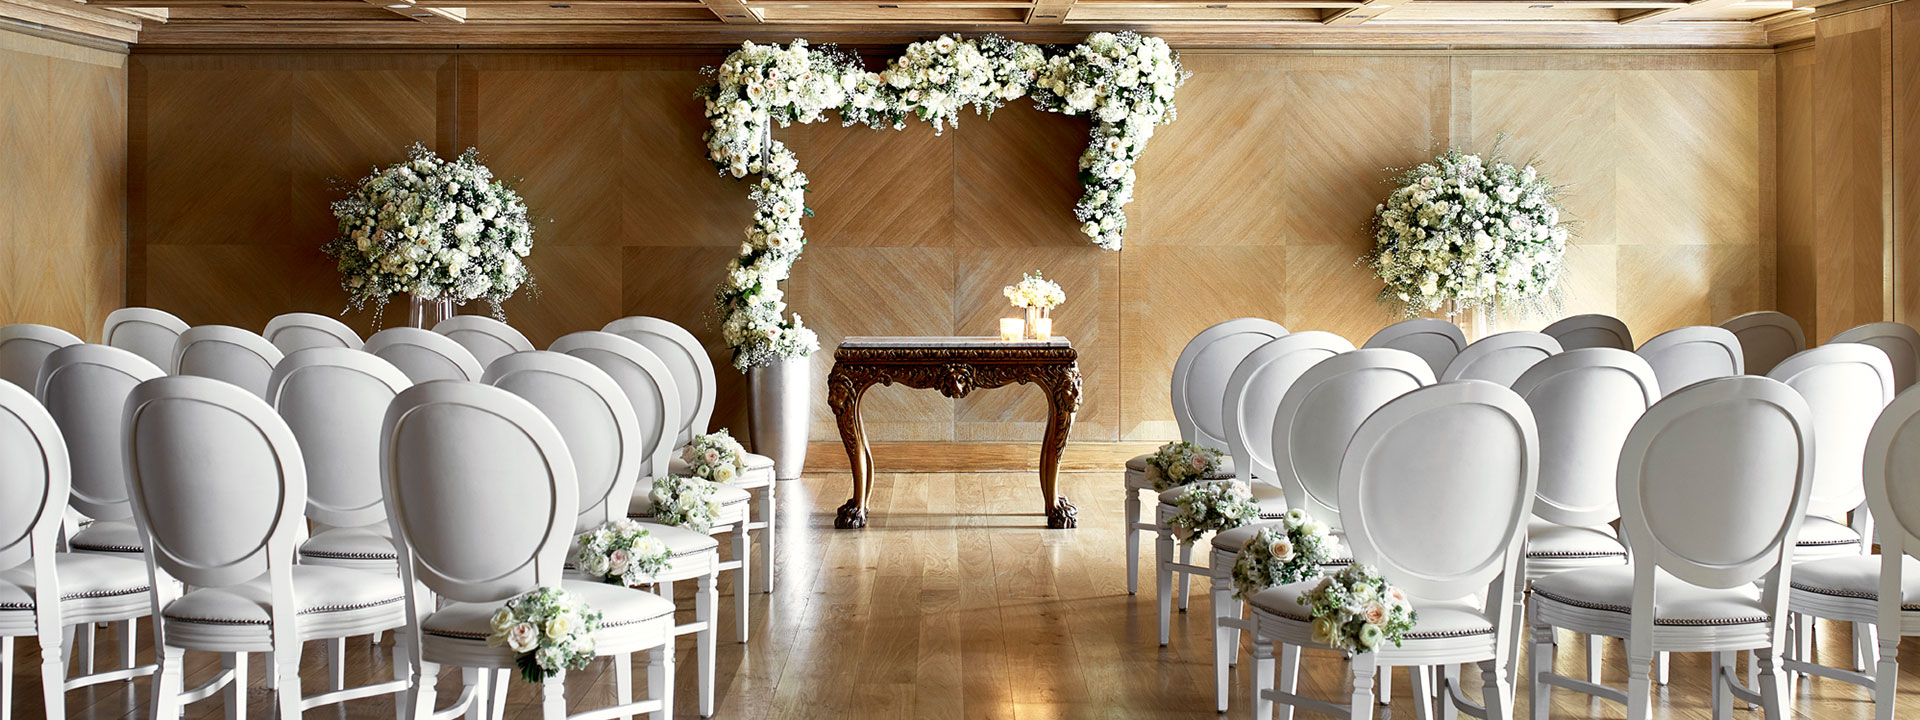 Wedding ceremony at the Connaught hotel Mayfair